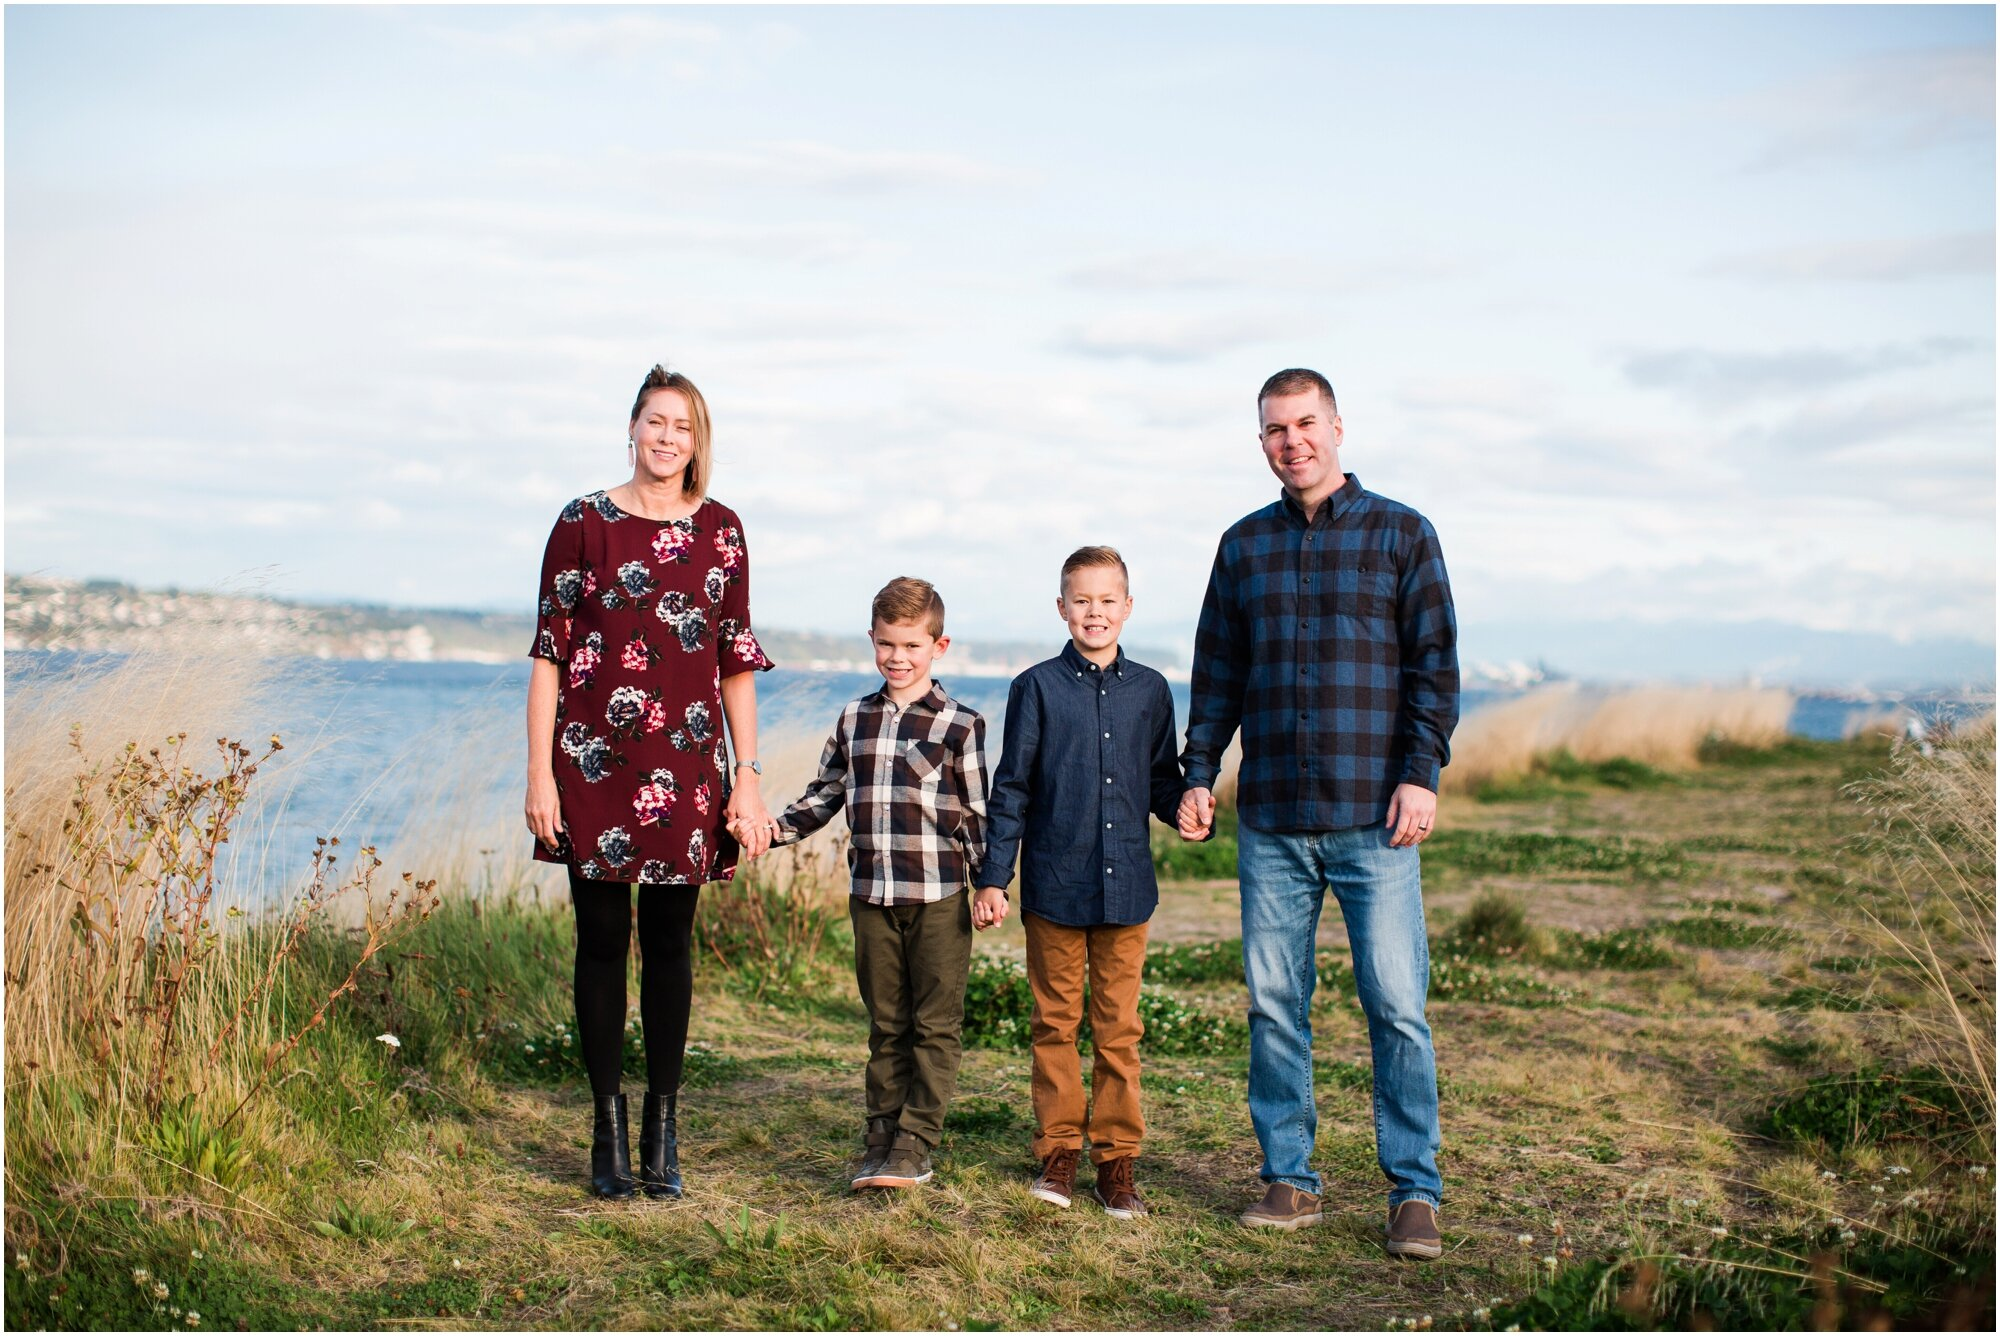 Family photos at Dune Peninsula in Ruston, WA. Photos by Briana Calderon Photography based in the greater Seattle-Tacoma Area._1411.jpg